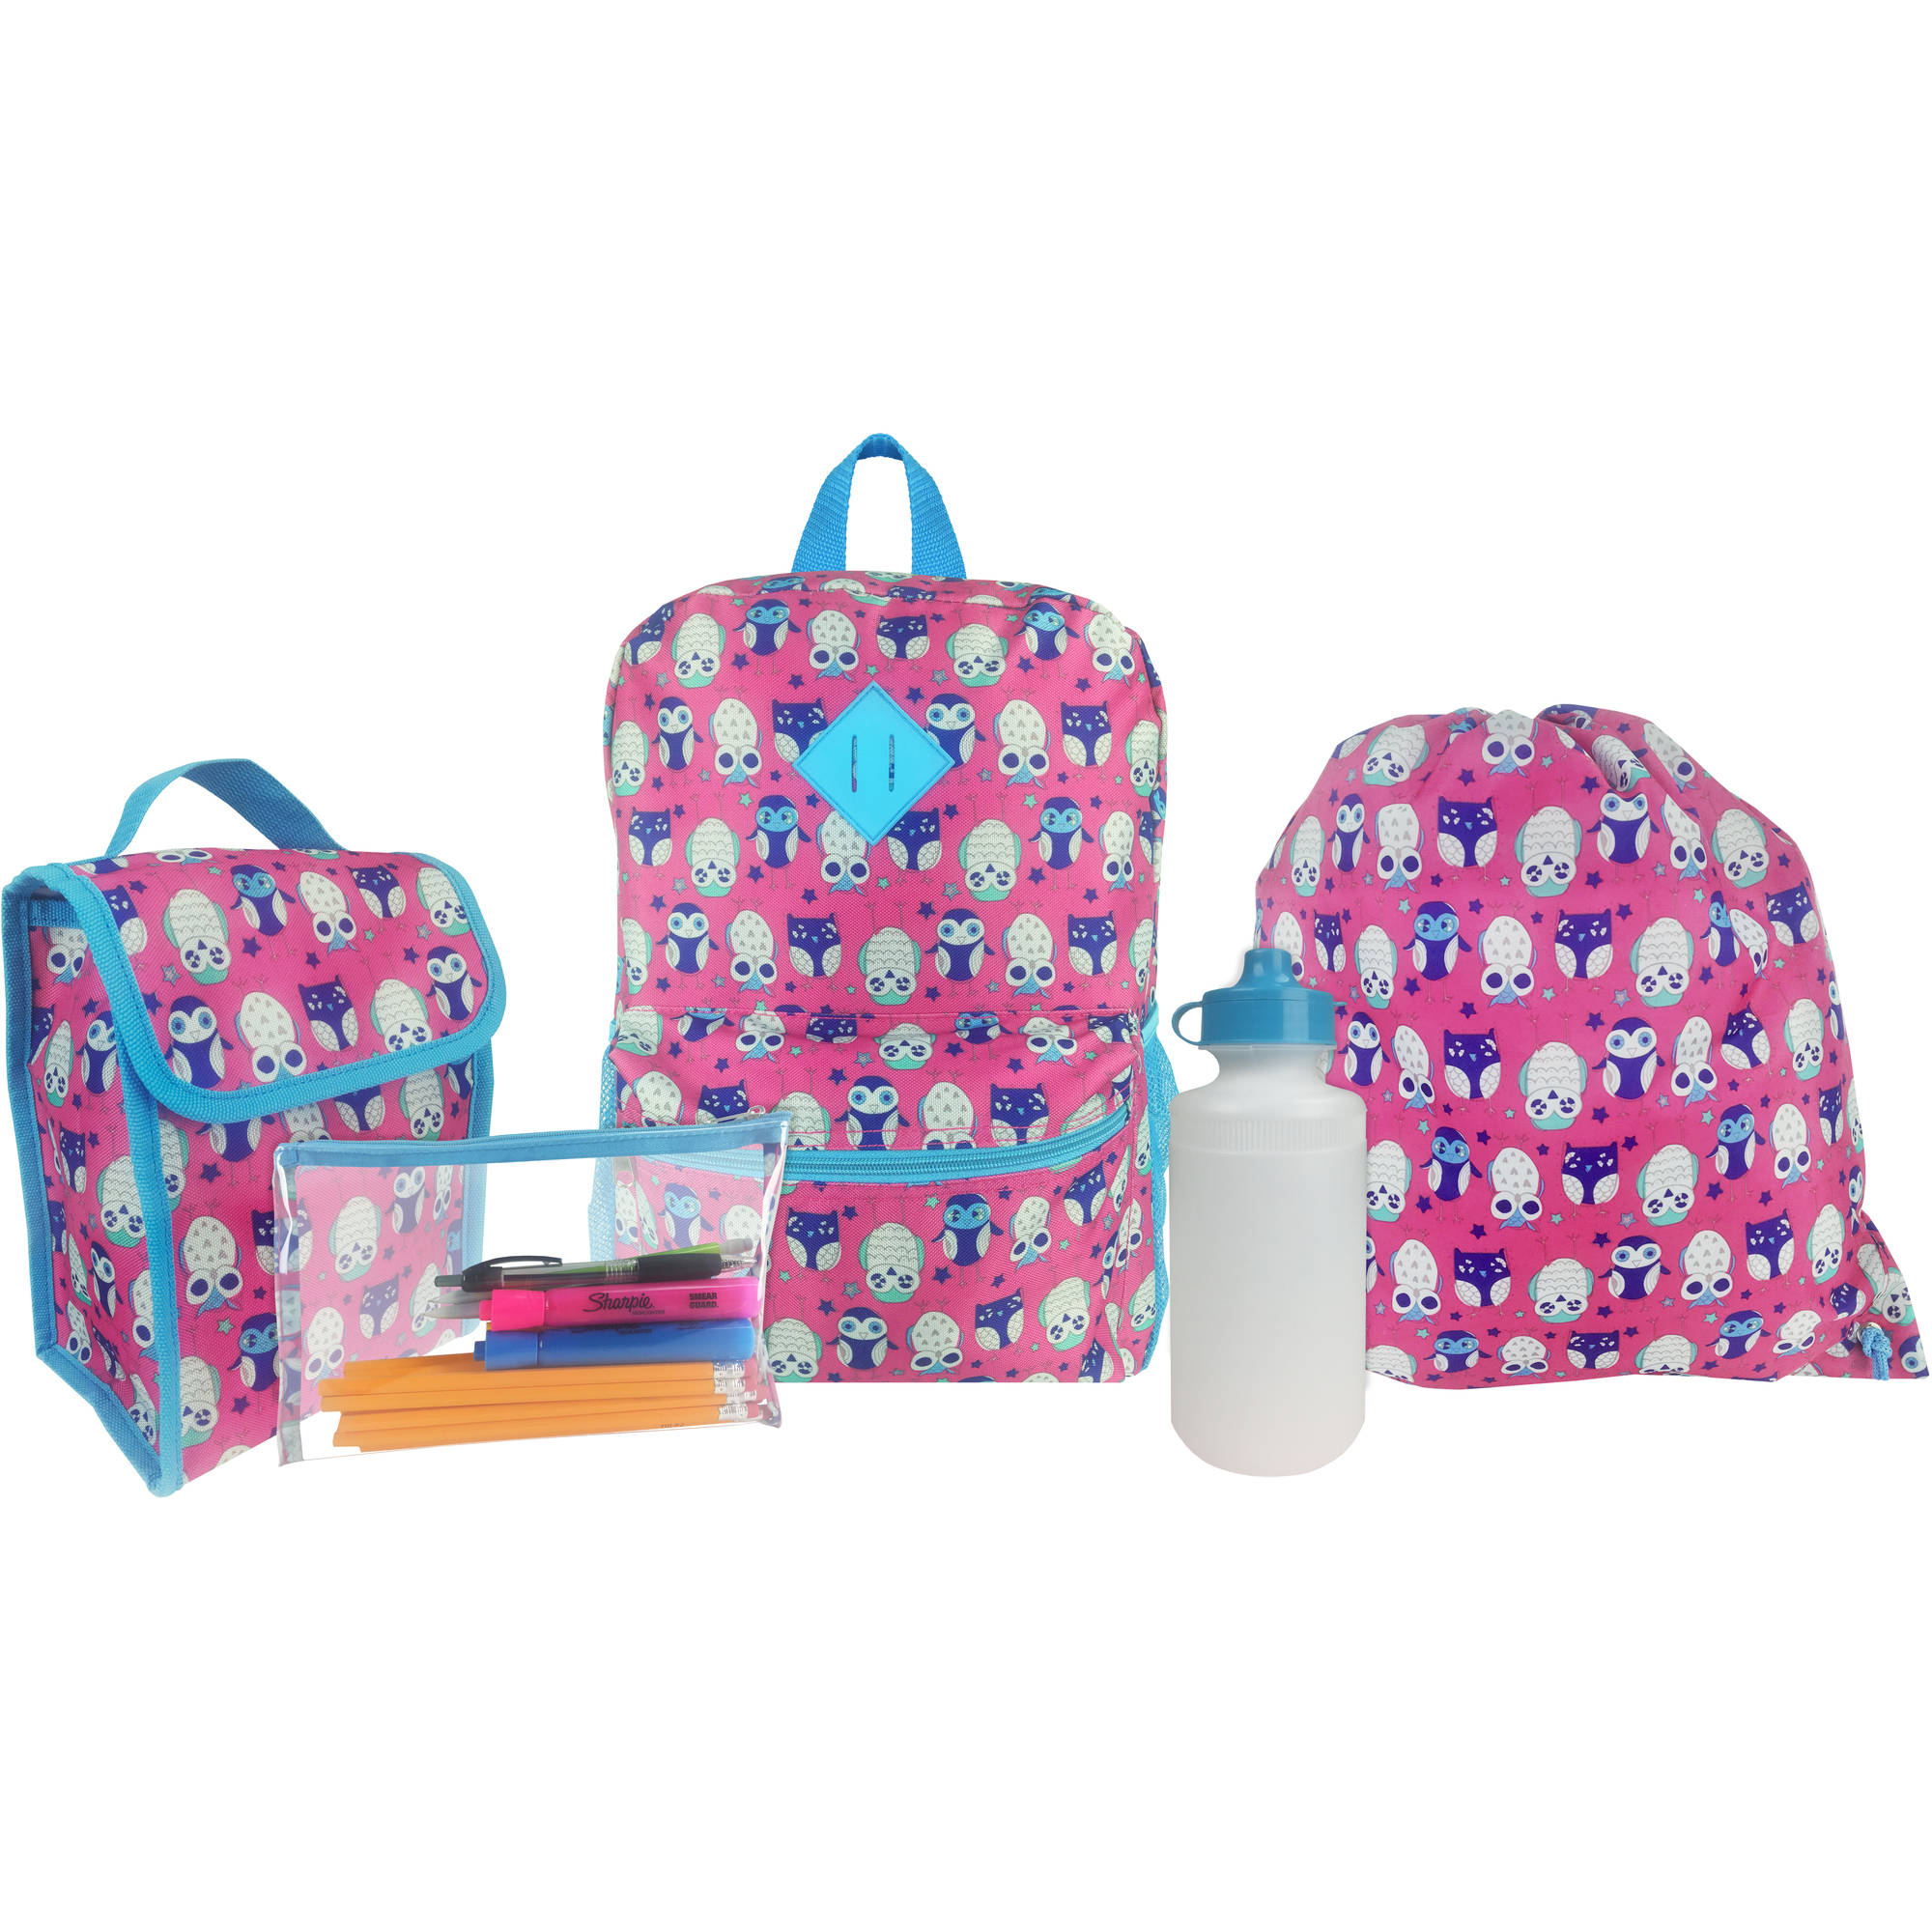 Kids 5 Piece Backpack Wth Lunch Bag, Waterbottle, Cinch Bag And Pencil Case